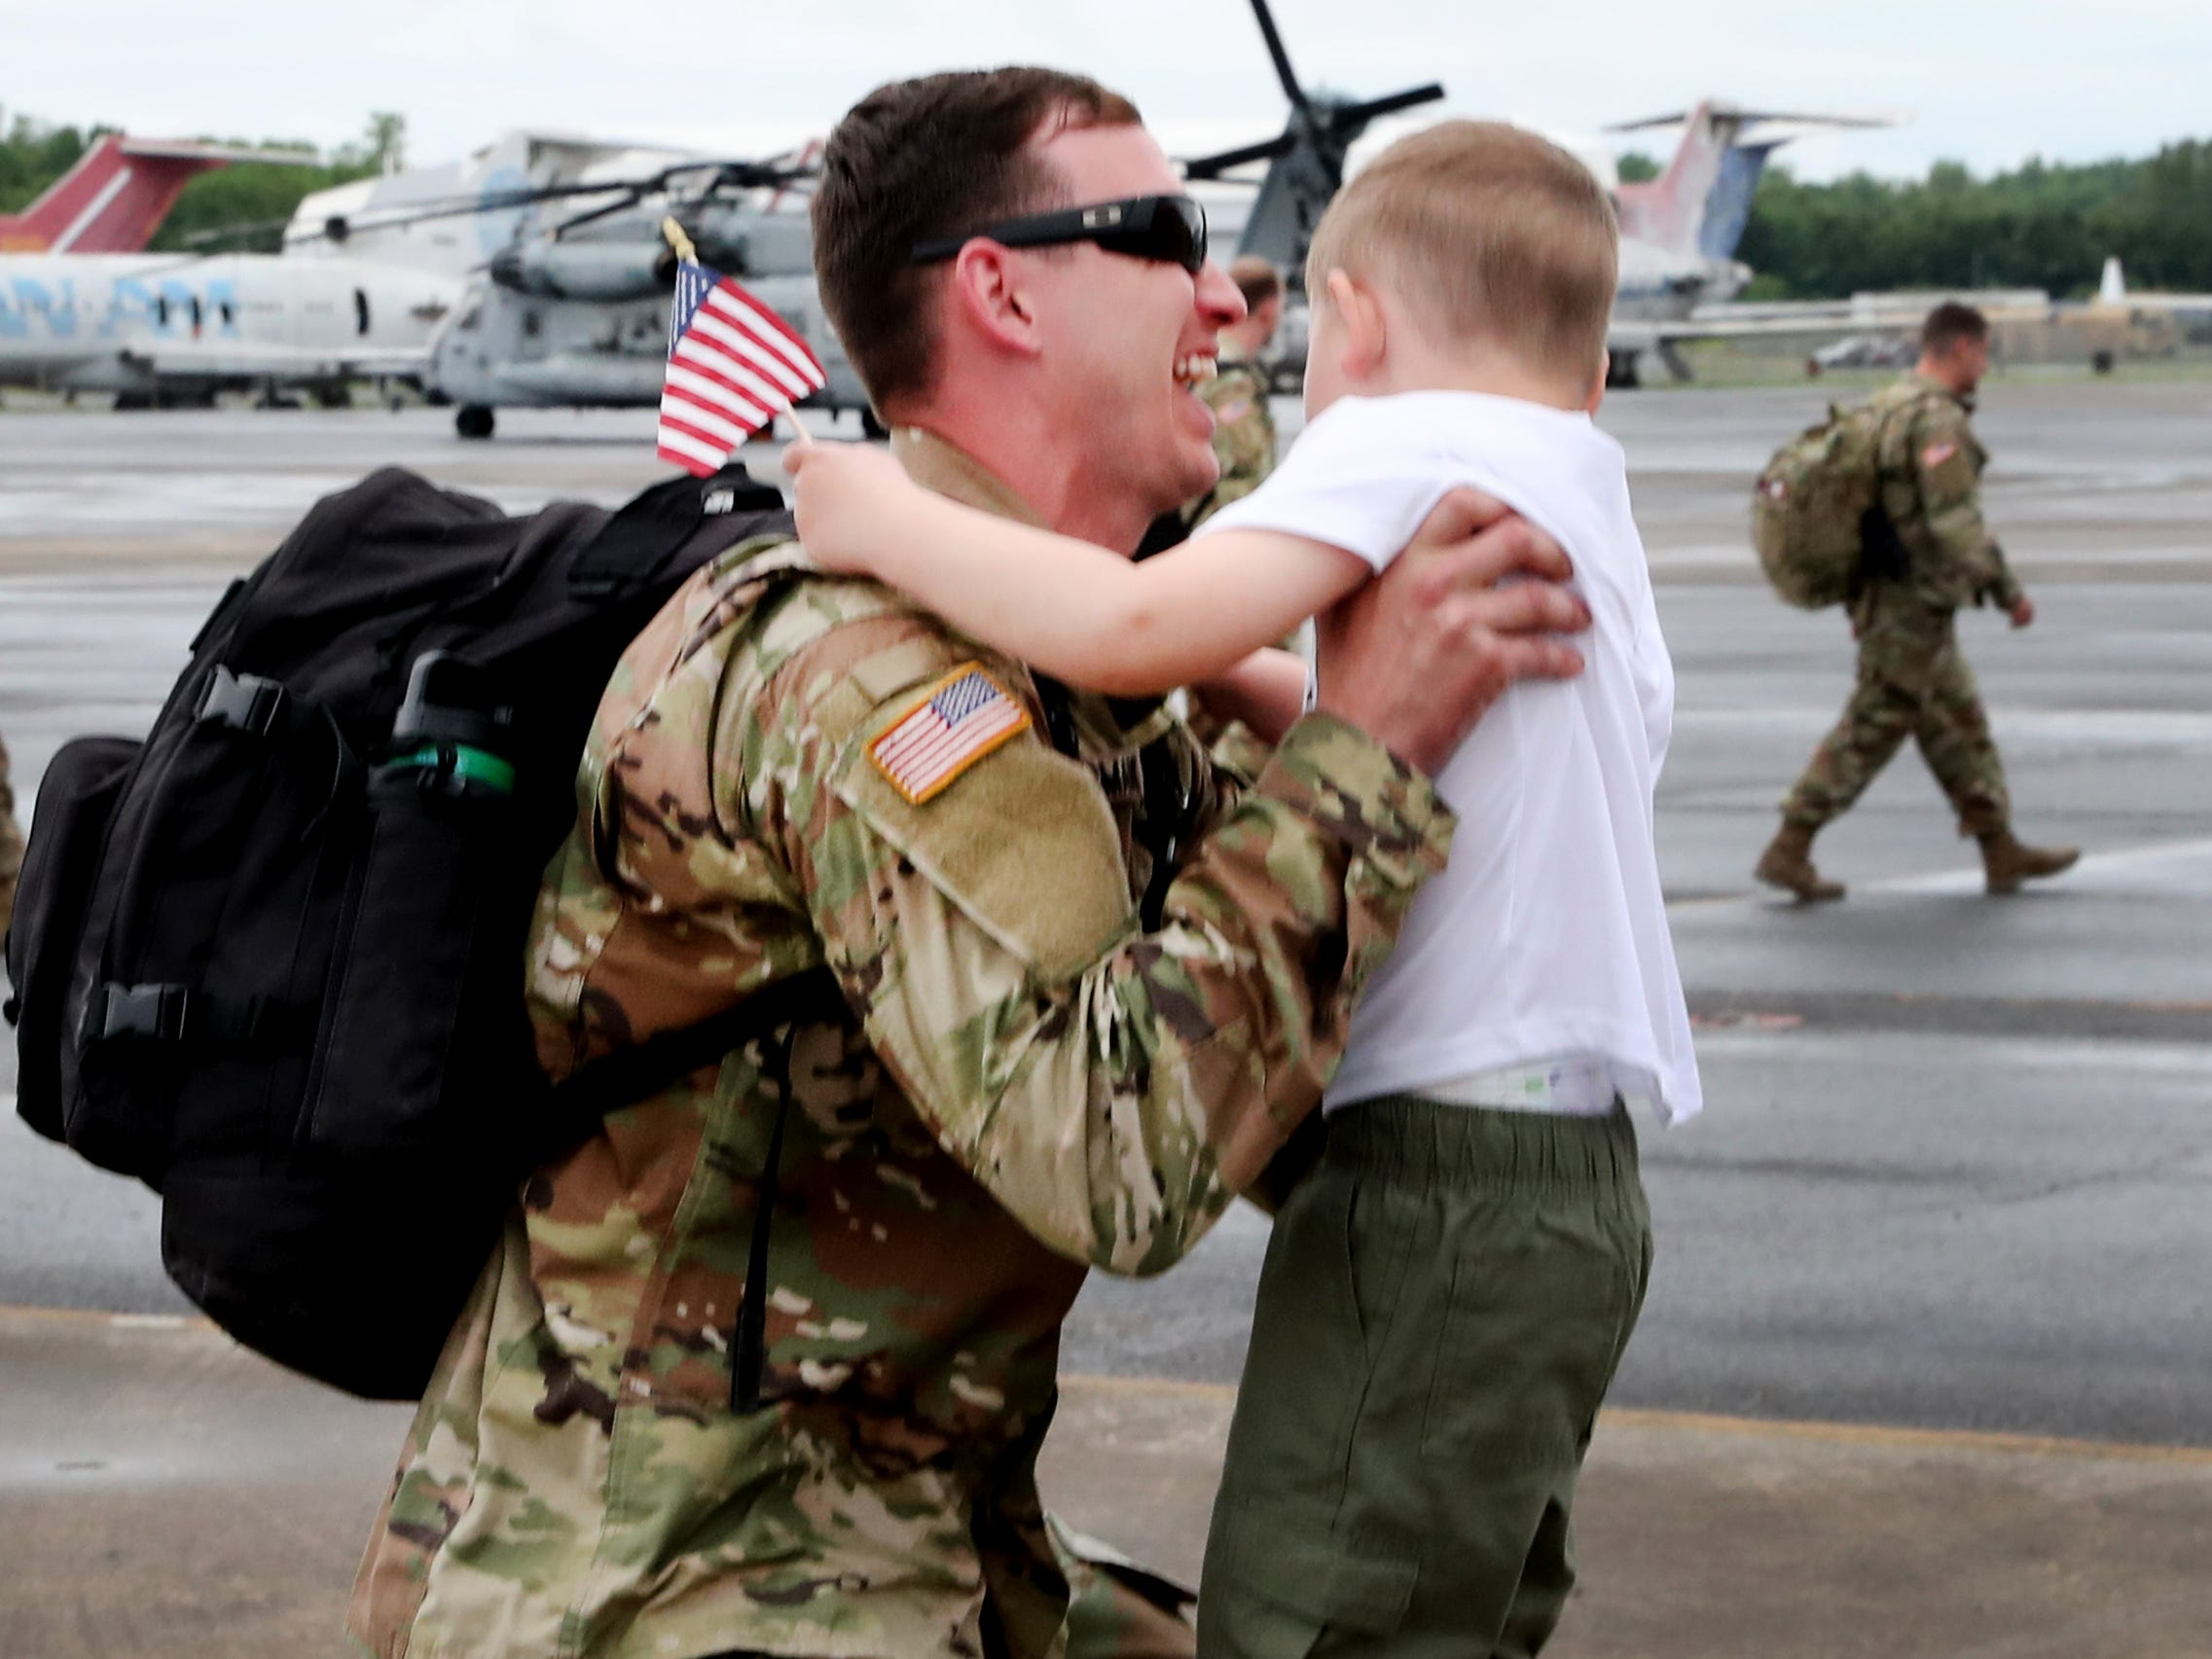 Camden Chipman, 3 gets picked up by his dad  Sgt. Cody Chipman, with the 278th ACR after he gets off the plane at the Volunteer Training Site in Smyrna, from a 9 month overseas deployment on Thursday, May 9, 2019.